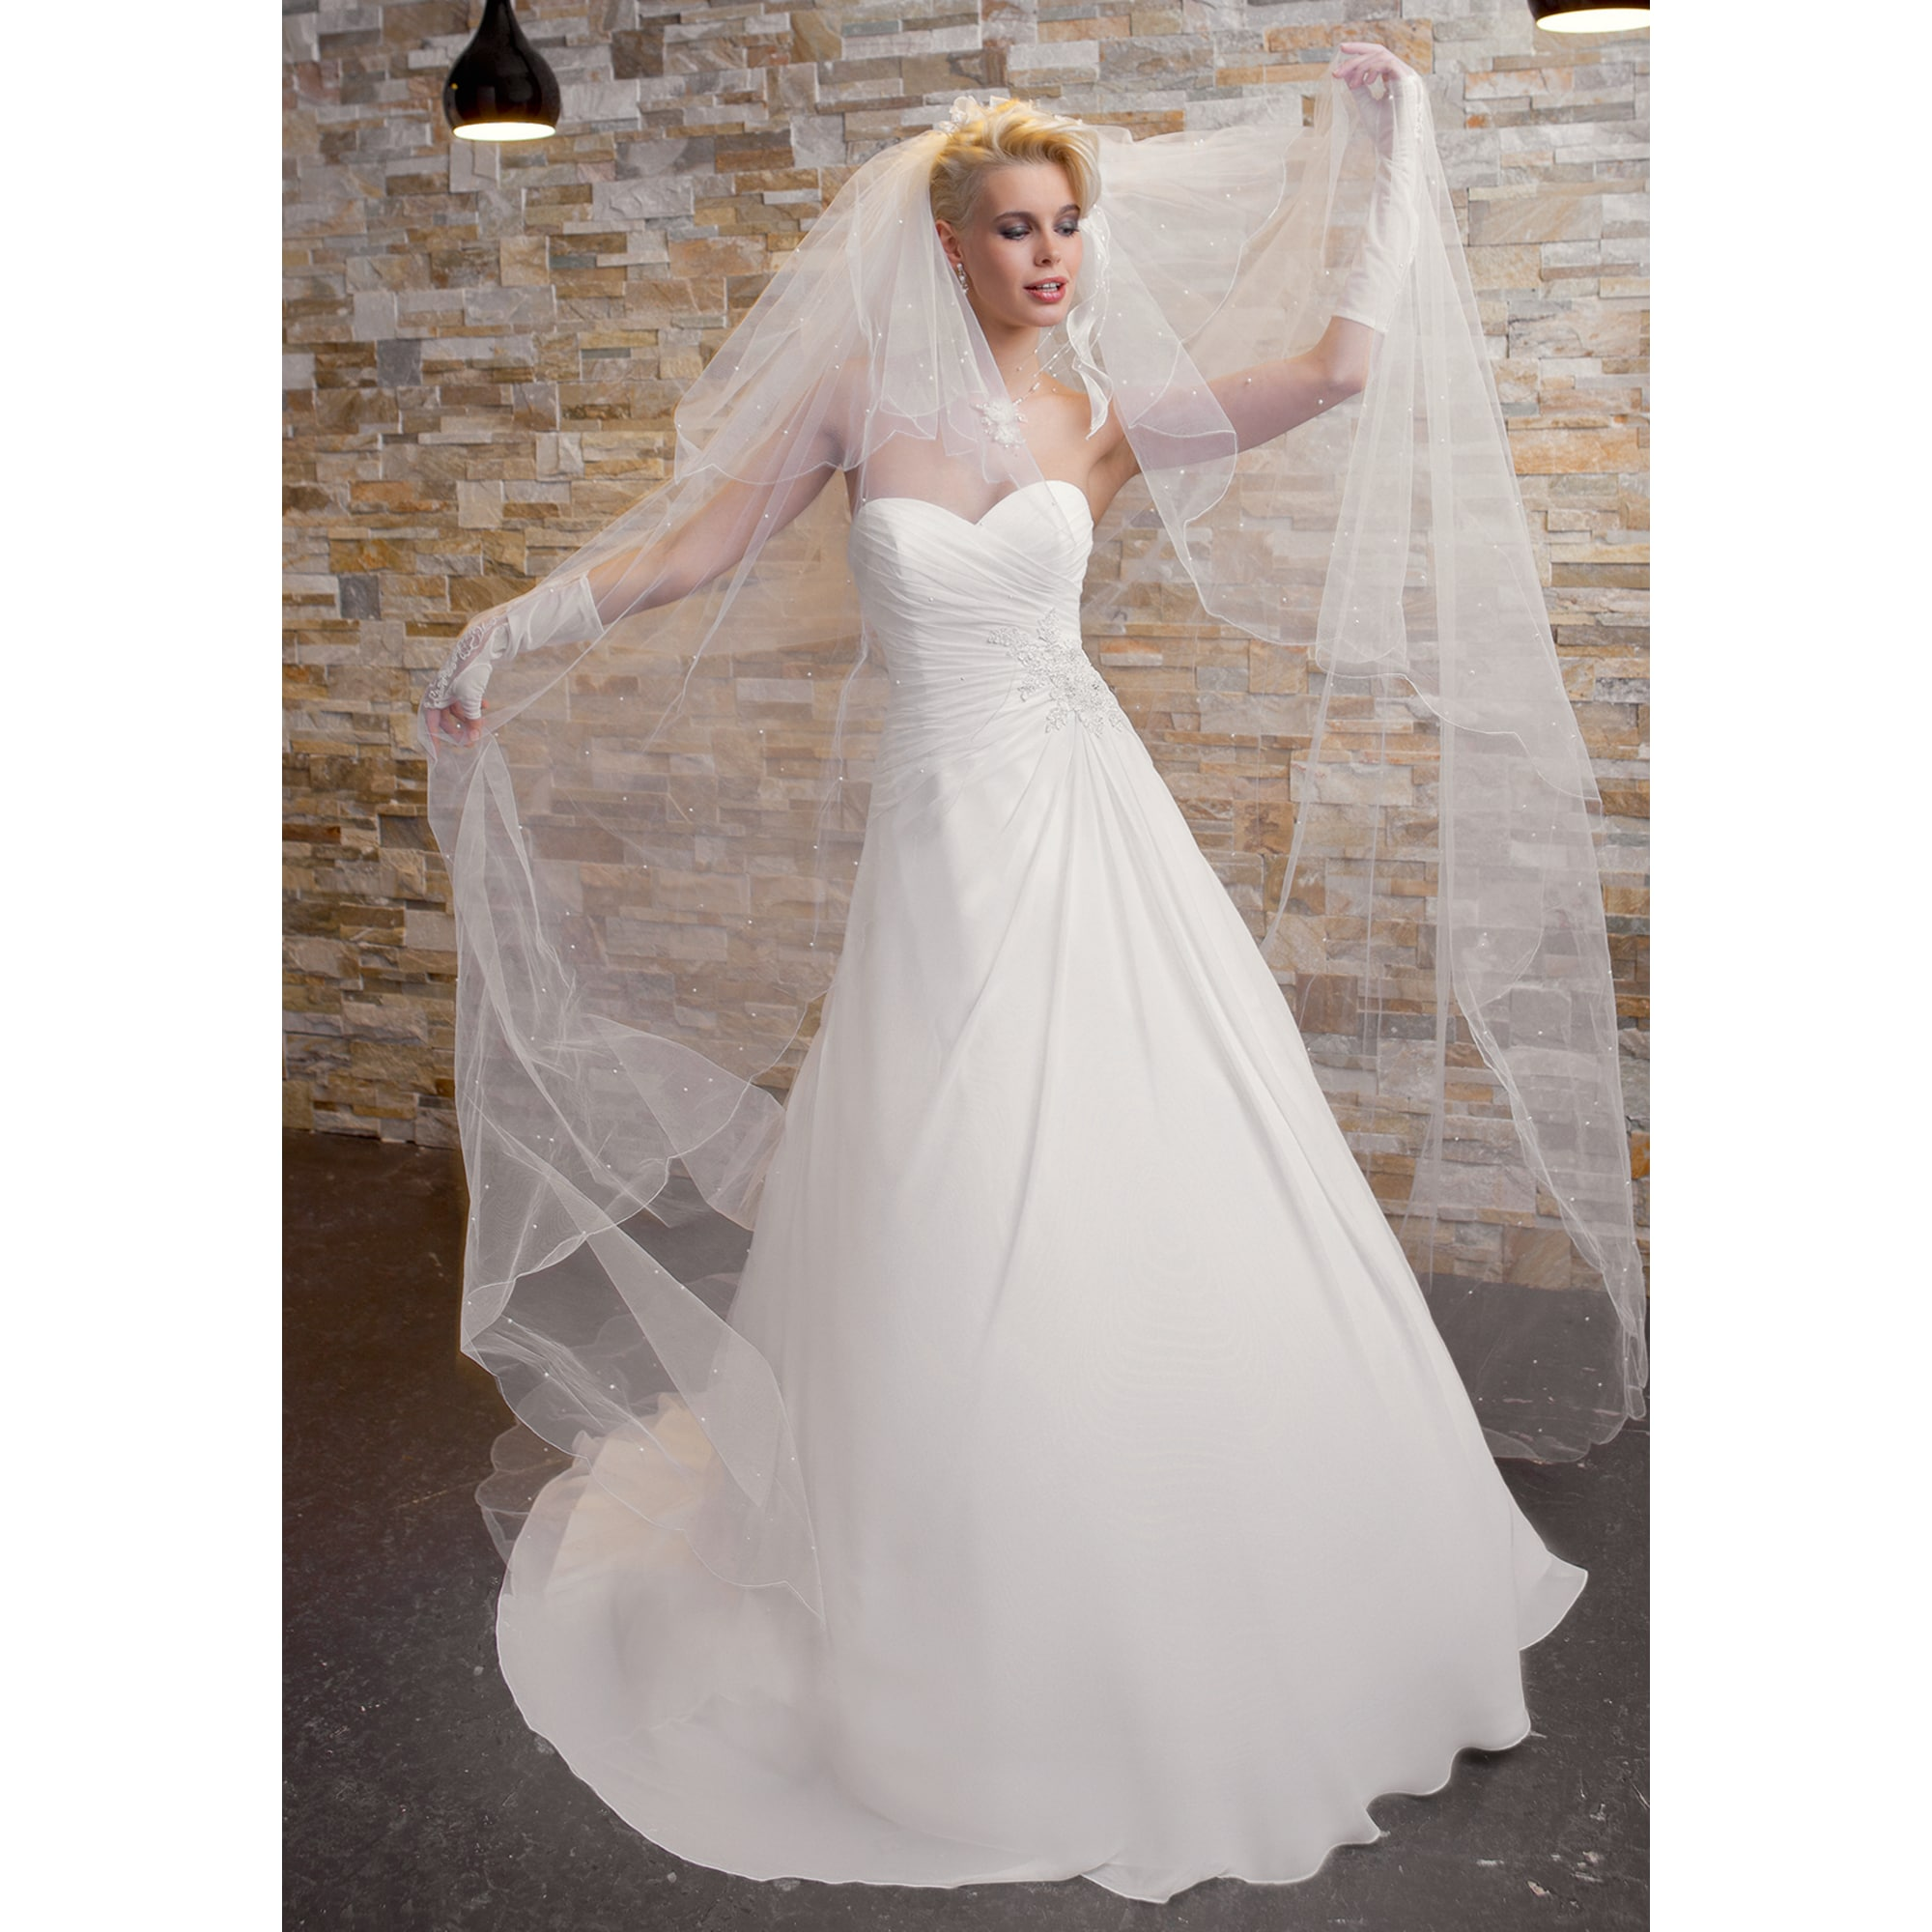 Creation 42lxlT4Blanc 7968915 Bella De Mariée Robe Fcl1JTK